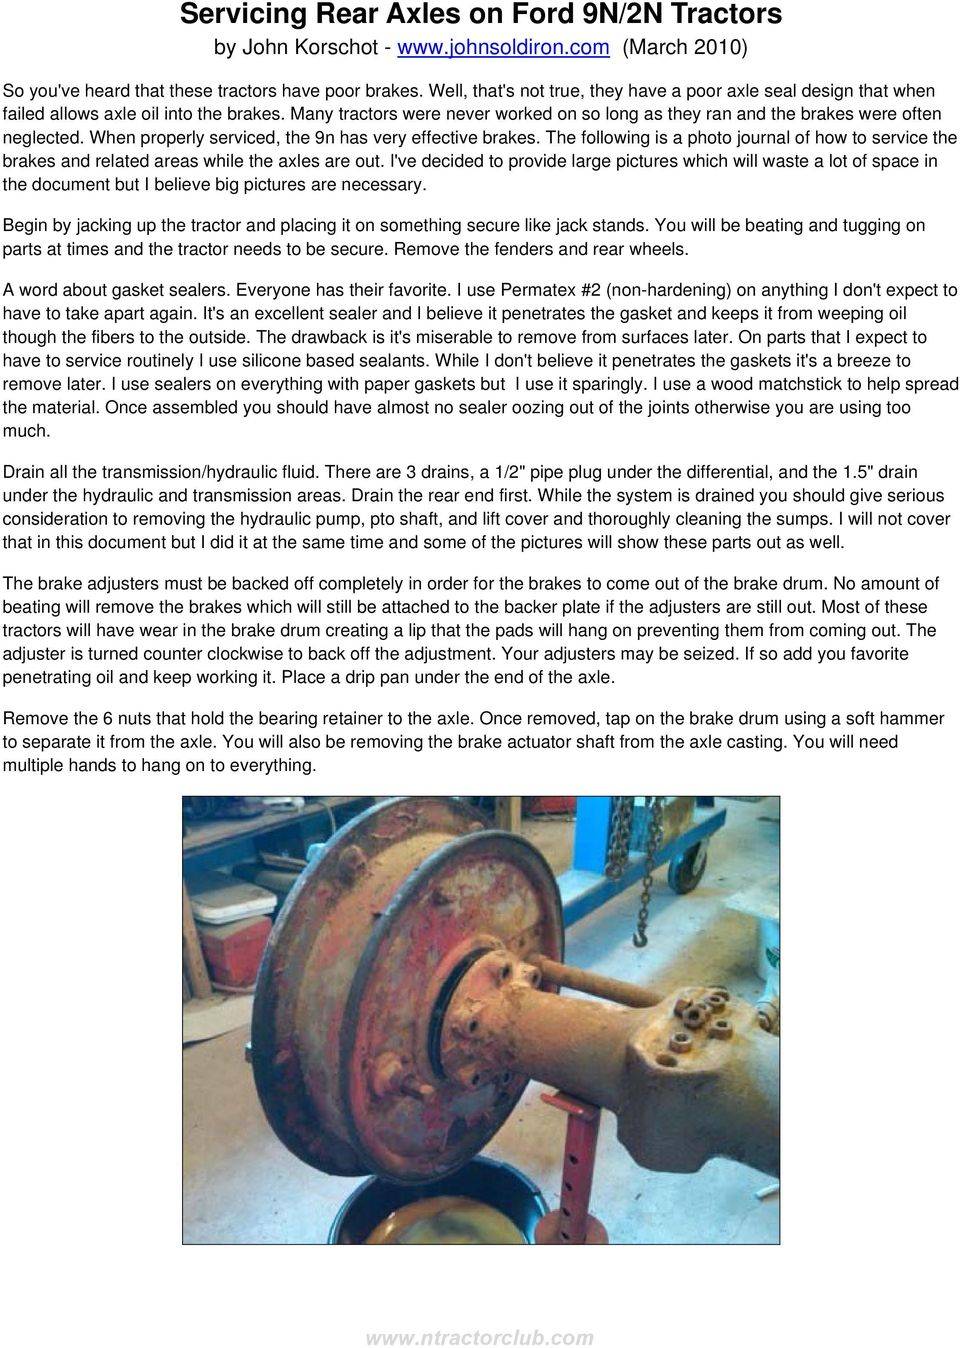 hight resolution of when properly serviced the 9n has very effective brakes the following is a photo